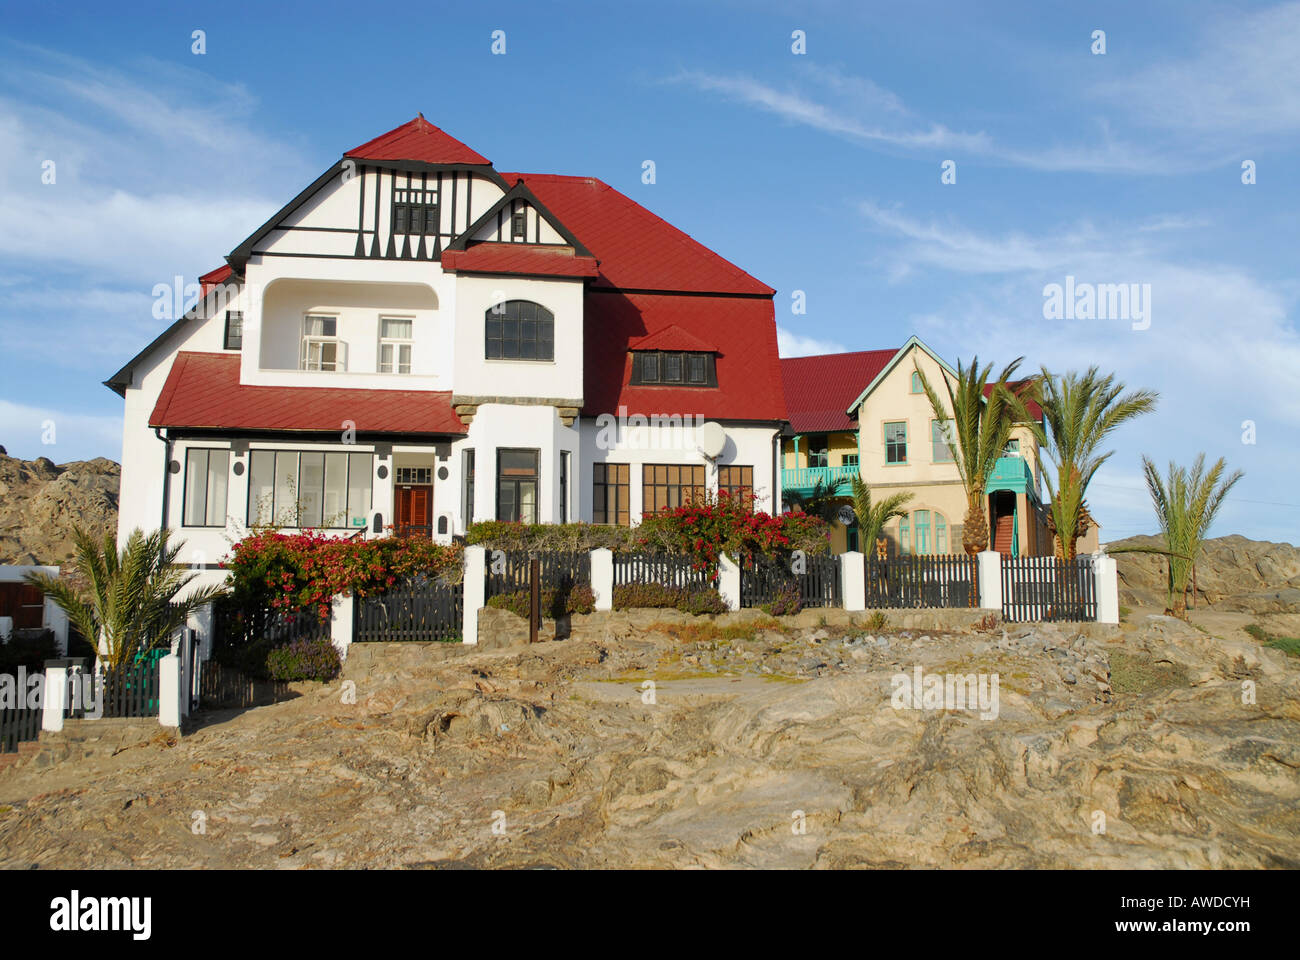 Historic German Colonial Houses In Luederitz Namibia Africa